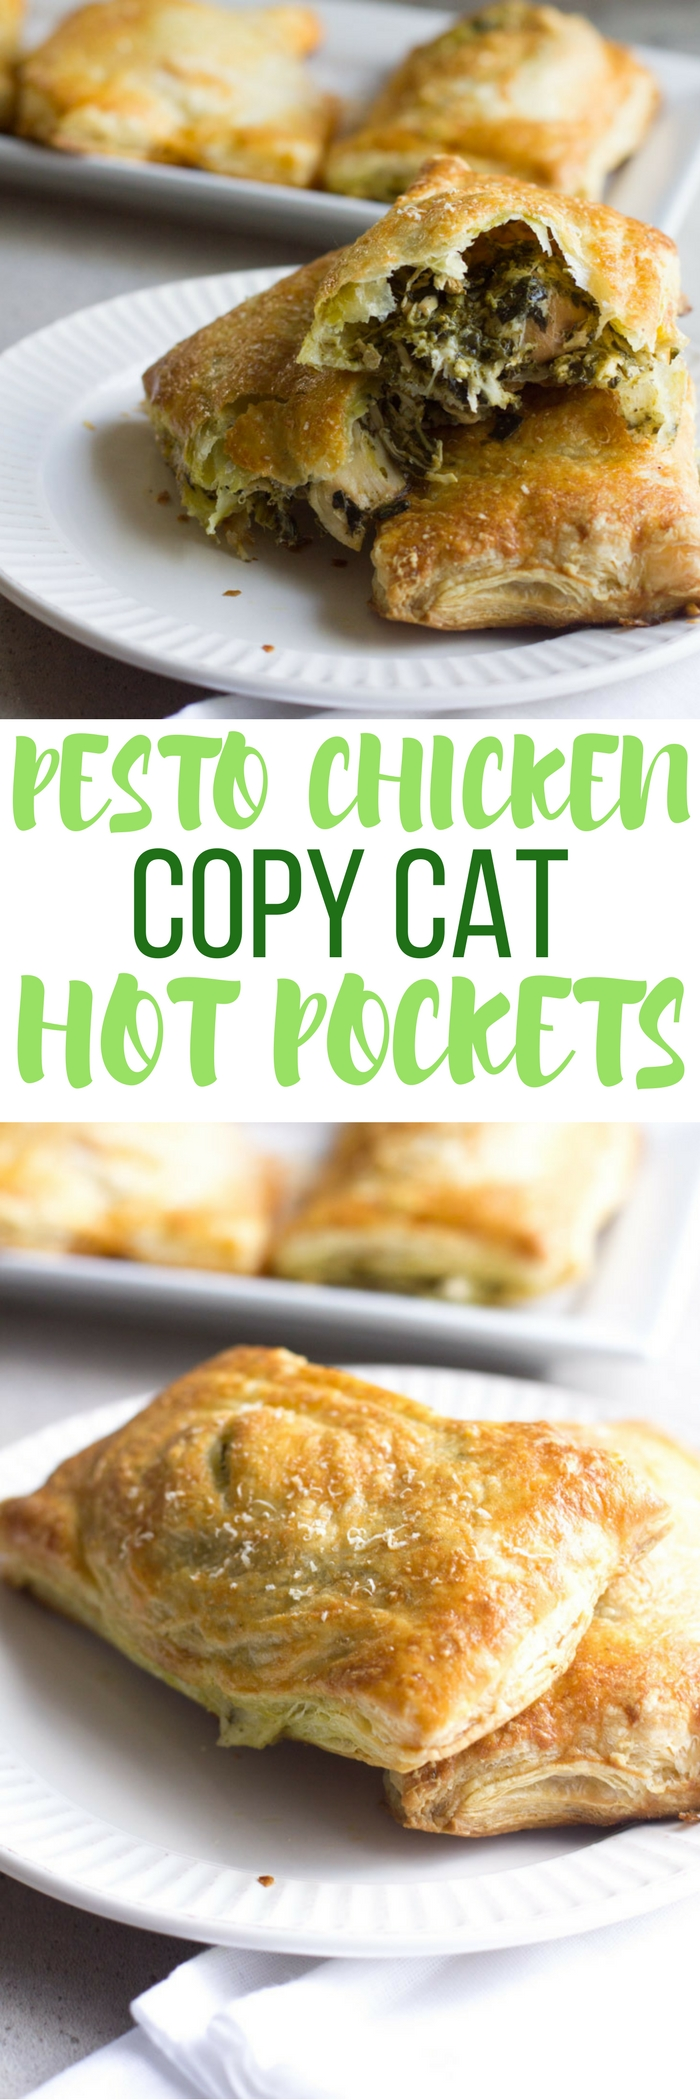 Copycat Pesto Chicken Hot Pockets are an excellent alternative to the store bought version. Use your own puff pastry or the recipe included and swap the ingredients to make it your own!